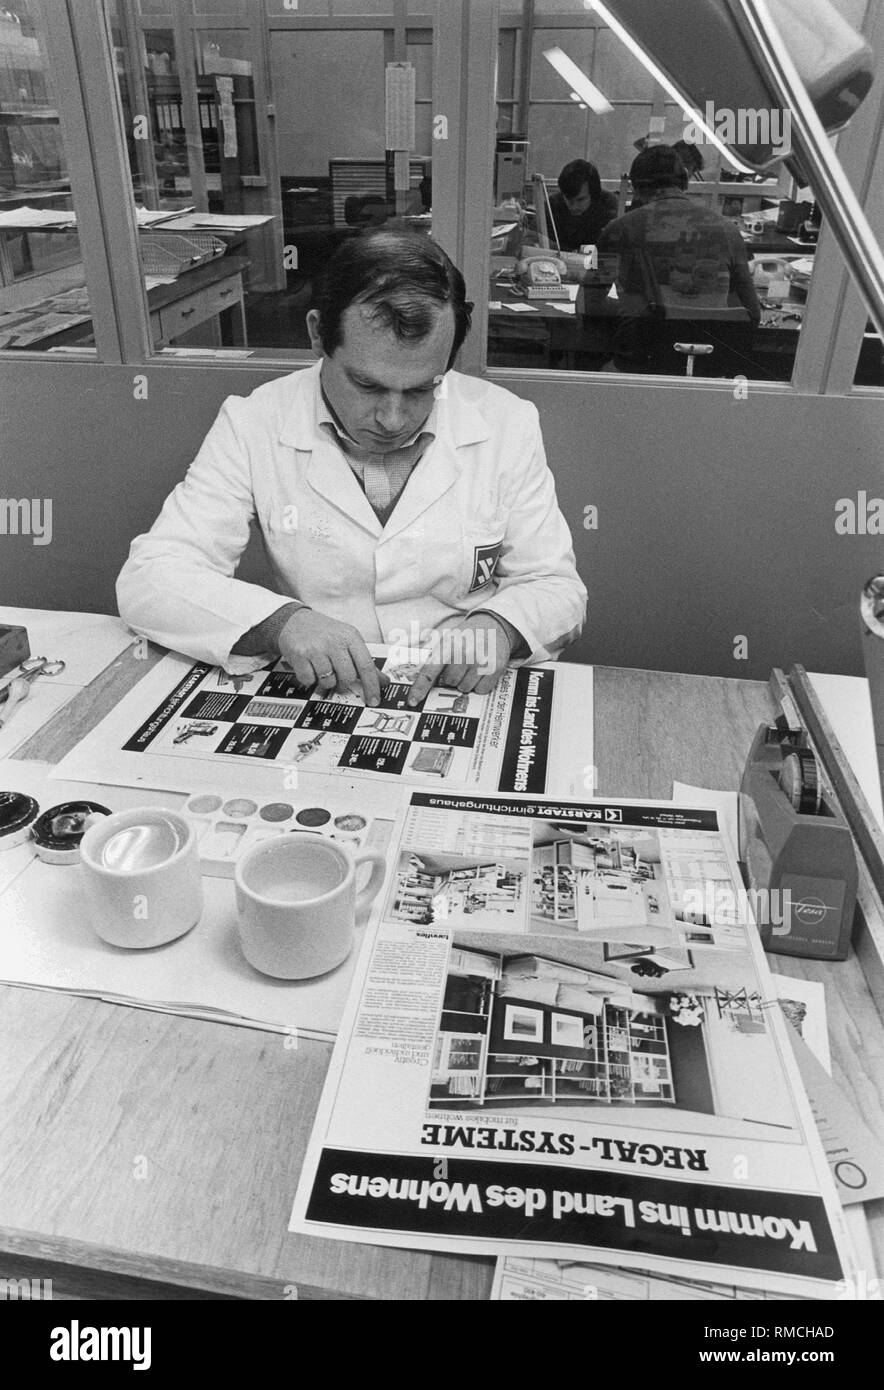 An employee arranges a newspaper supplement for the Sueddeutsche Zeitung, in this case a page of the Karstadt department store. - Stock Image